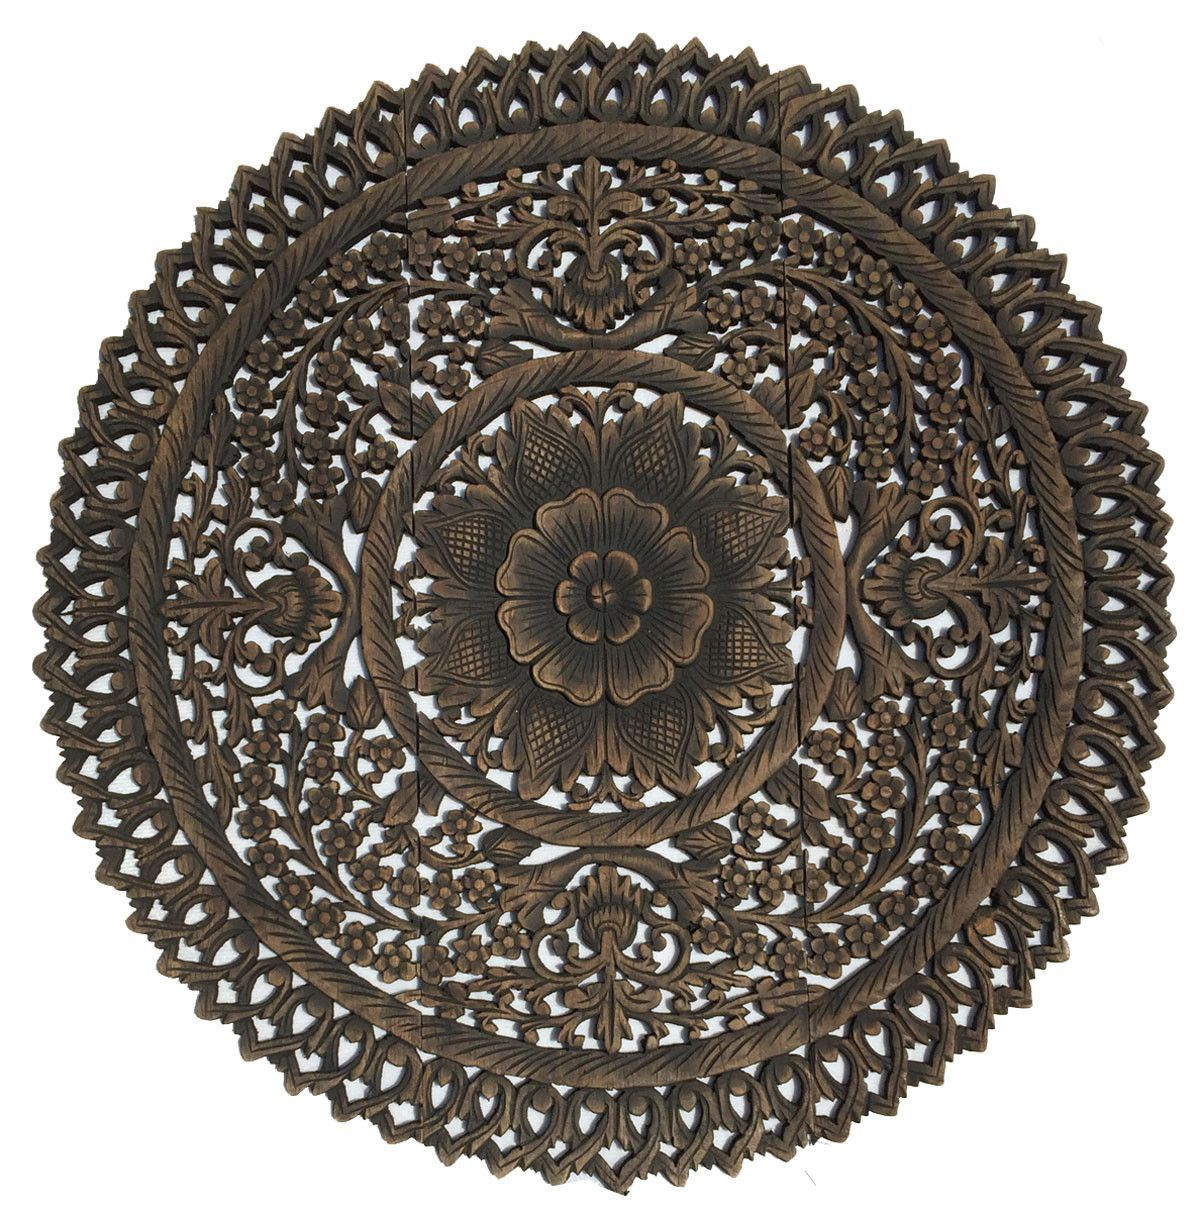 Elegant Medallion Wood Carved Wall Plaque Round Wood Carved Floral Wall Art Asian Wood Carvi With Images Carved Wood Wall Decor Wood Wall Decor Carved Wall Art